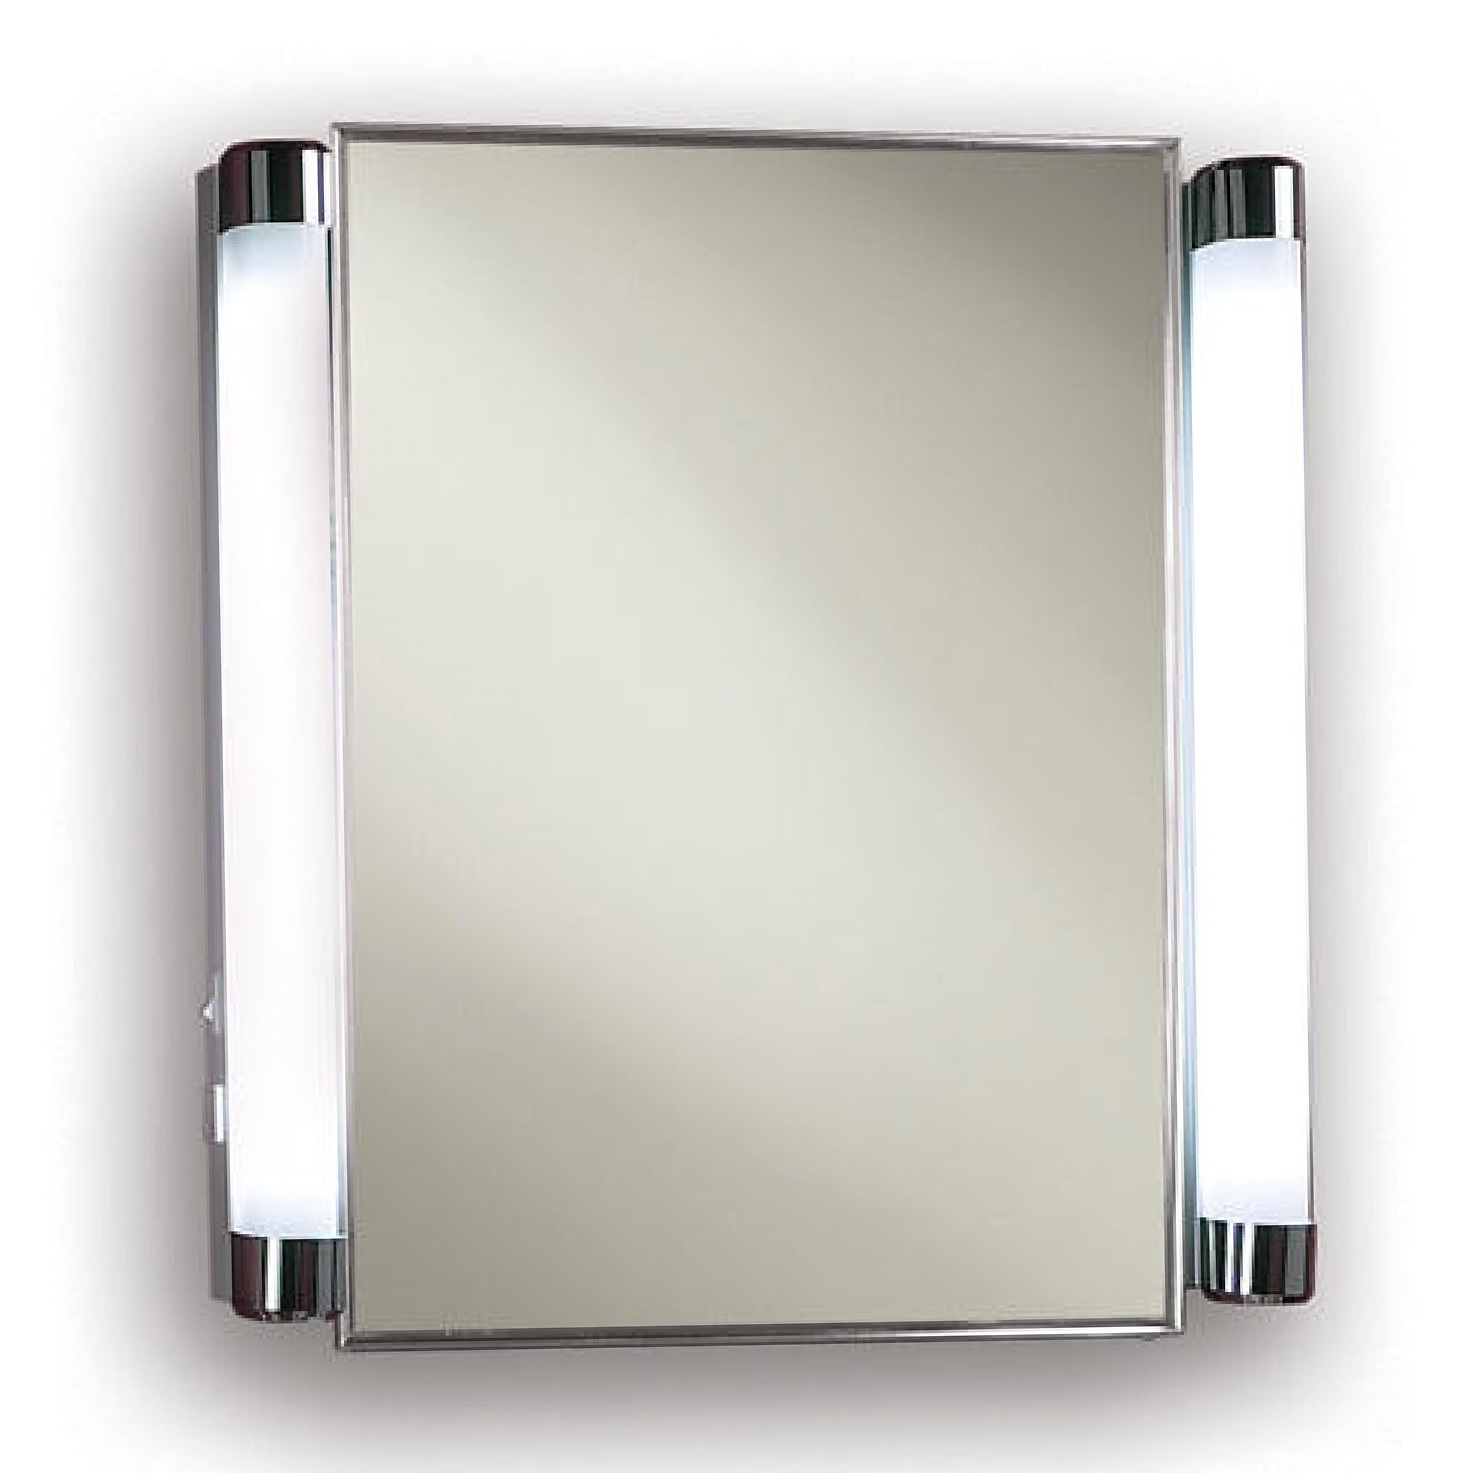 Recessed Mirrored Medicine Cabinet